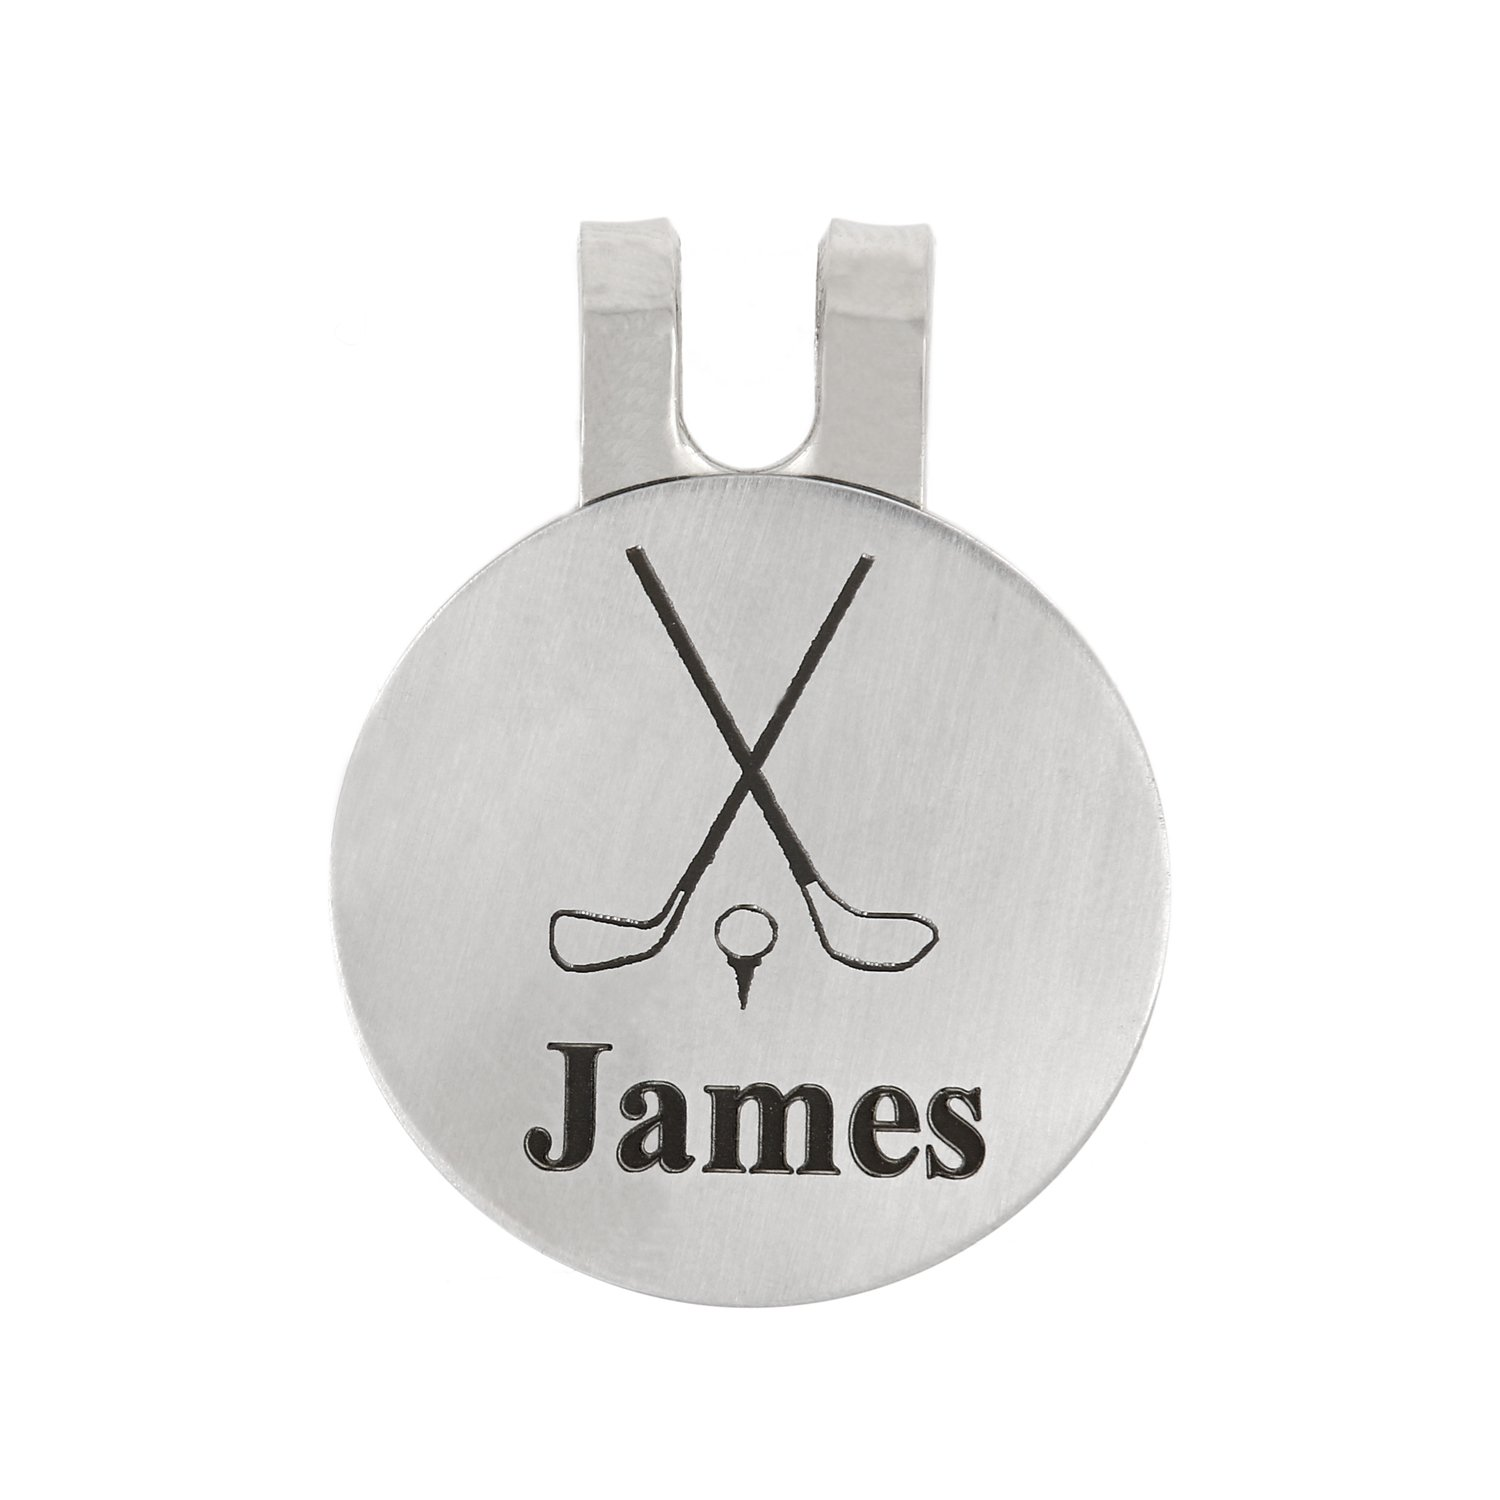 Lgu(TM Personalized Monogrammed Golf Marker, Golf Ball Marker, Pocket Token, Golf Accessory Golf Magnetic Hat Clip with Coin